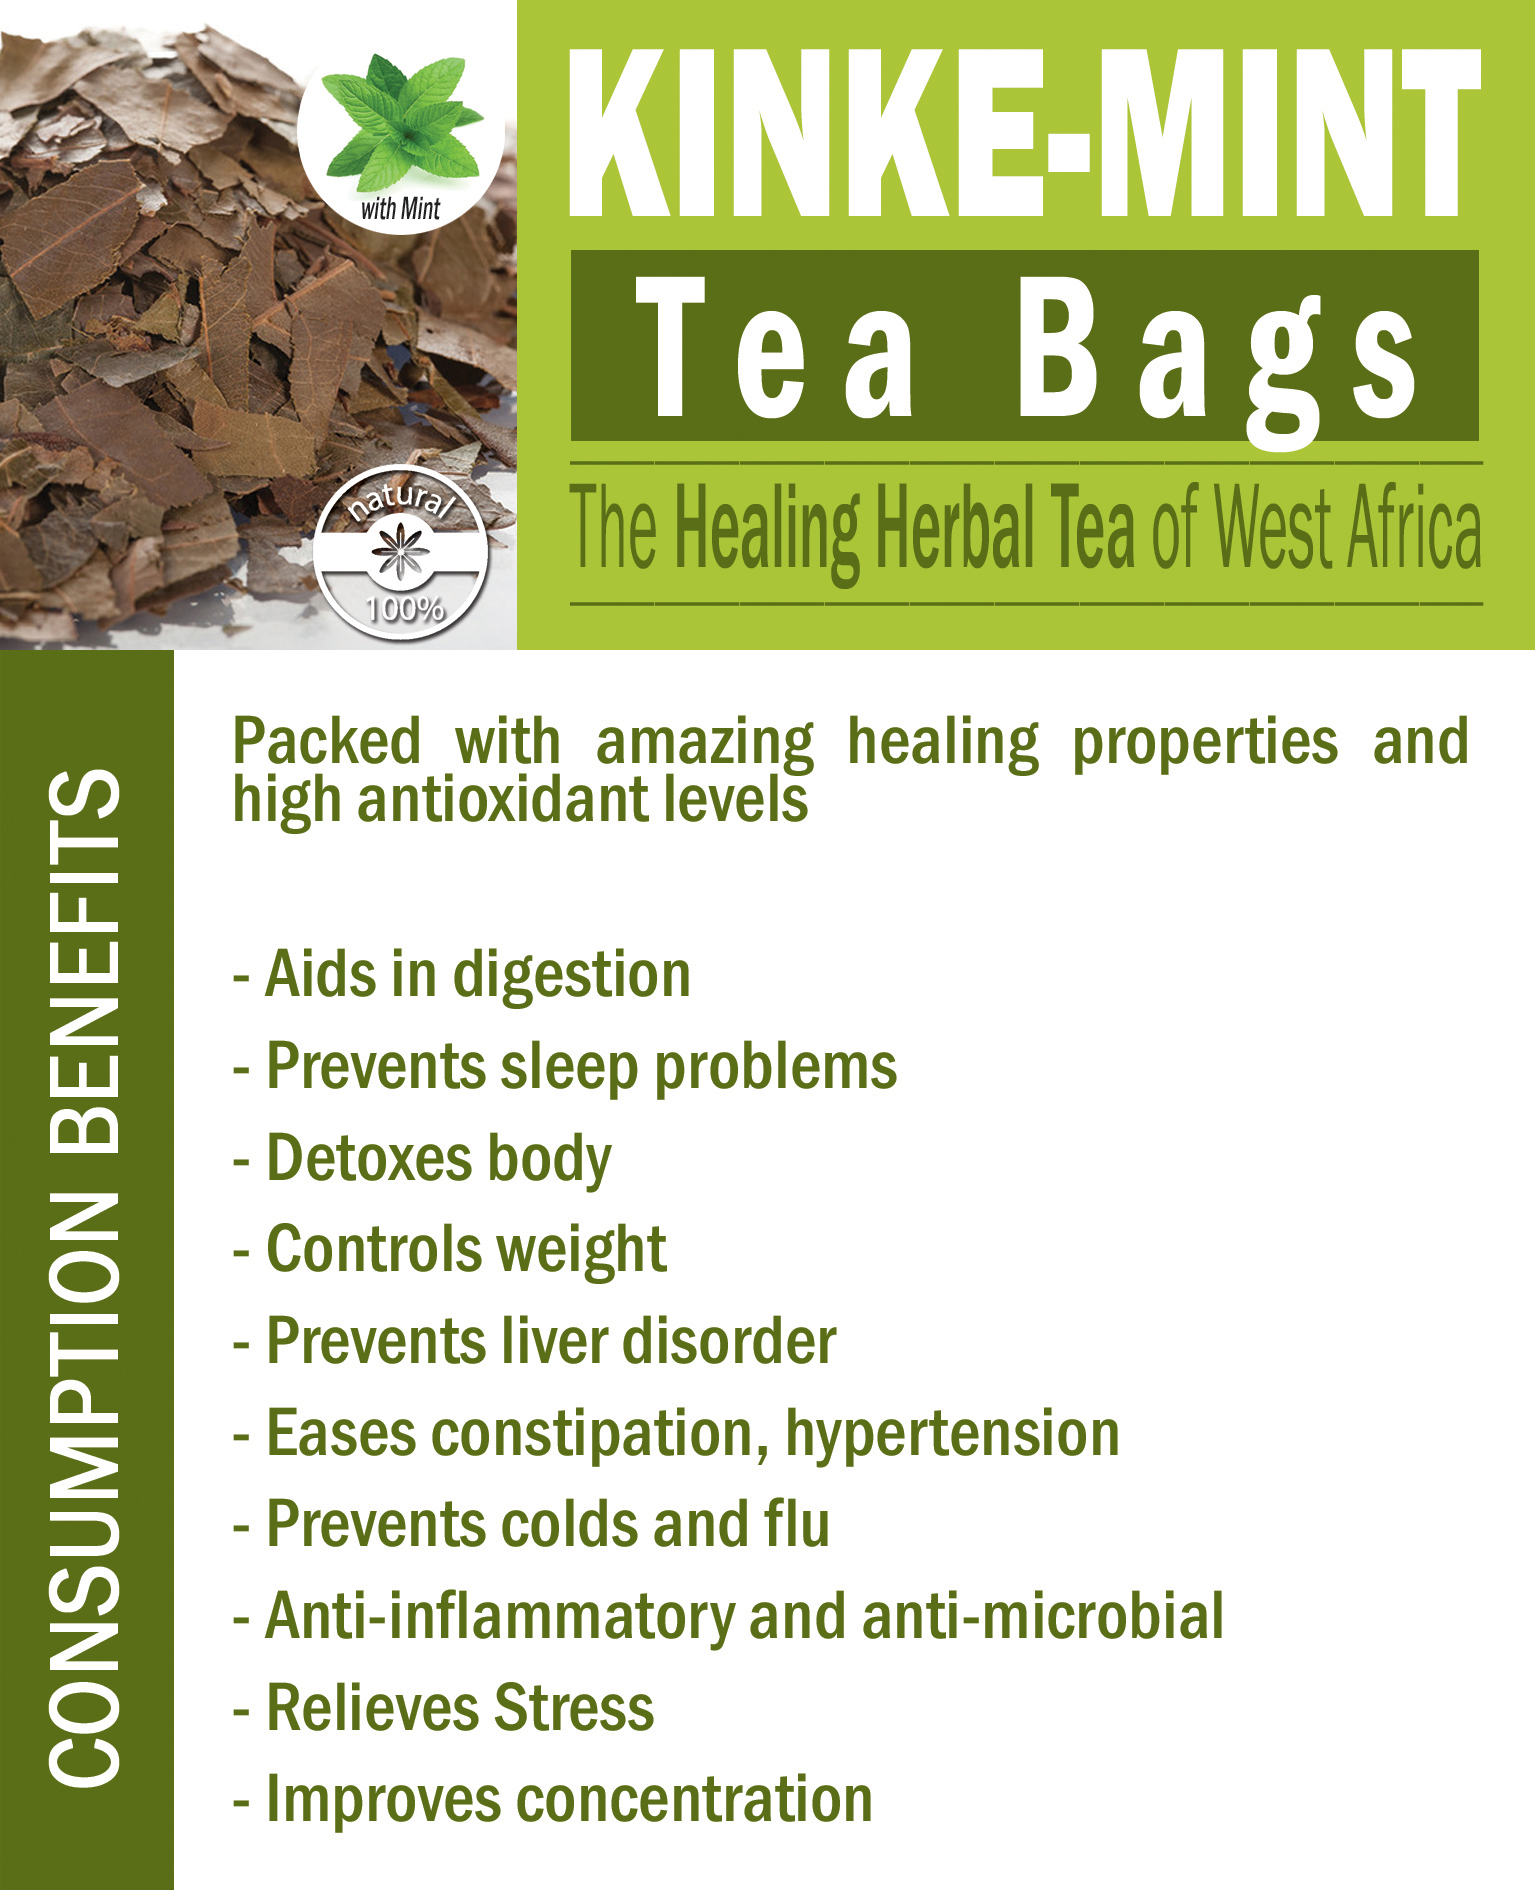 Kinke-Mint Tea Bags Benefits